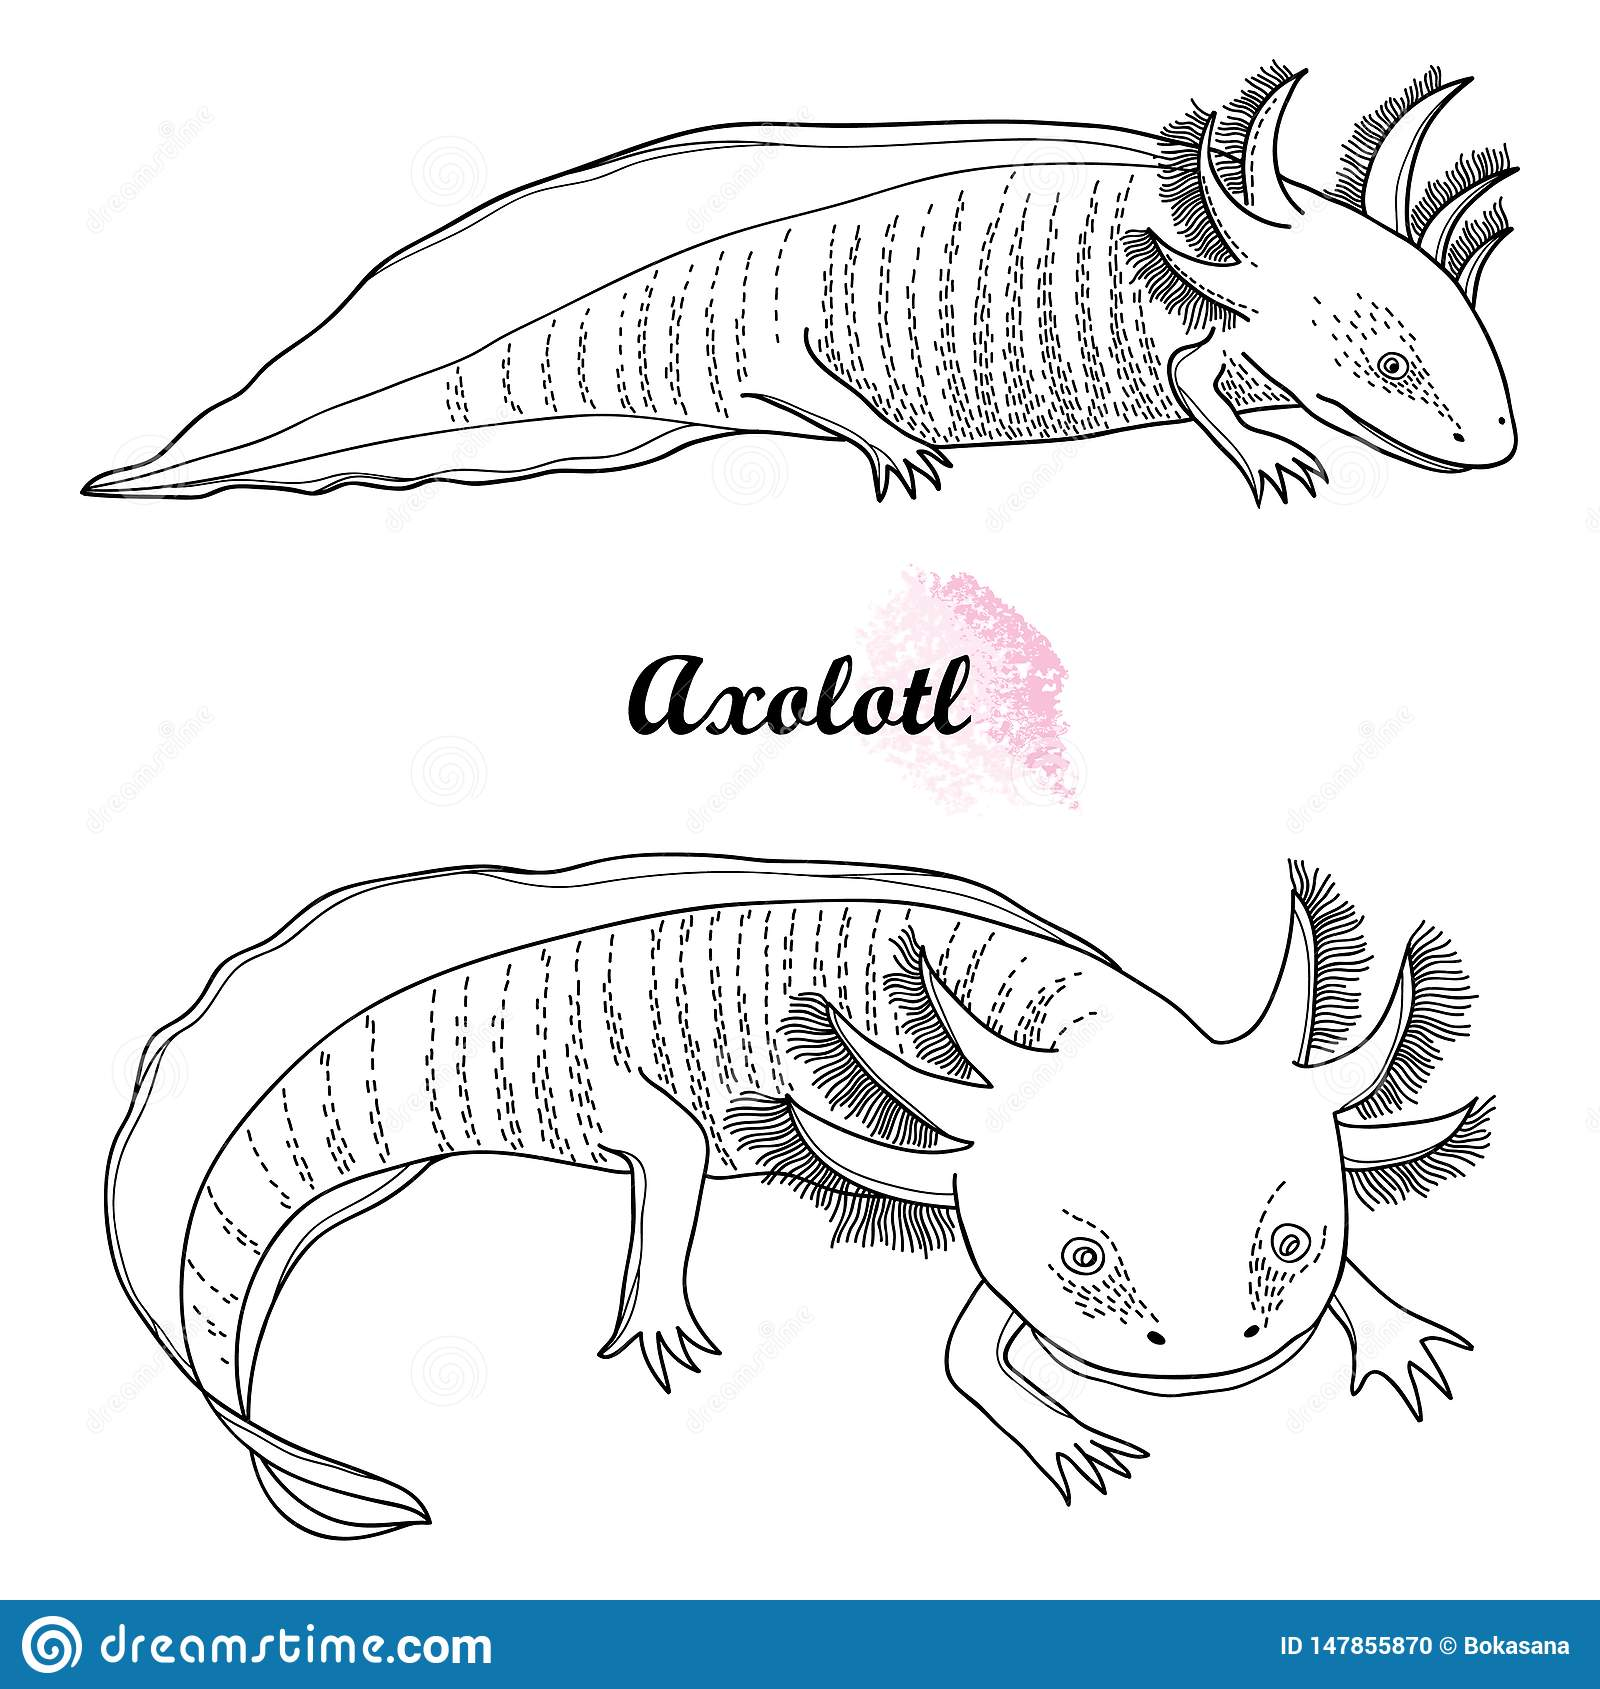 Vector set of outline Mexican axolotl or walking fish in black isolated on white background. Vertebrate animal amphibian.